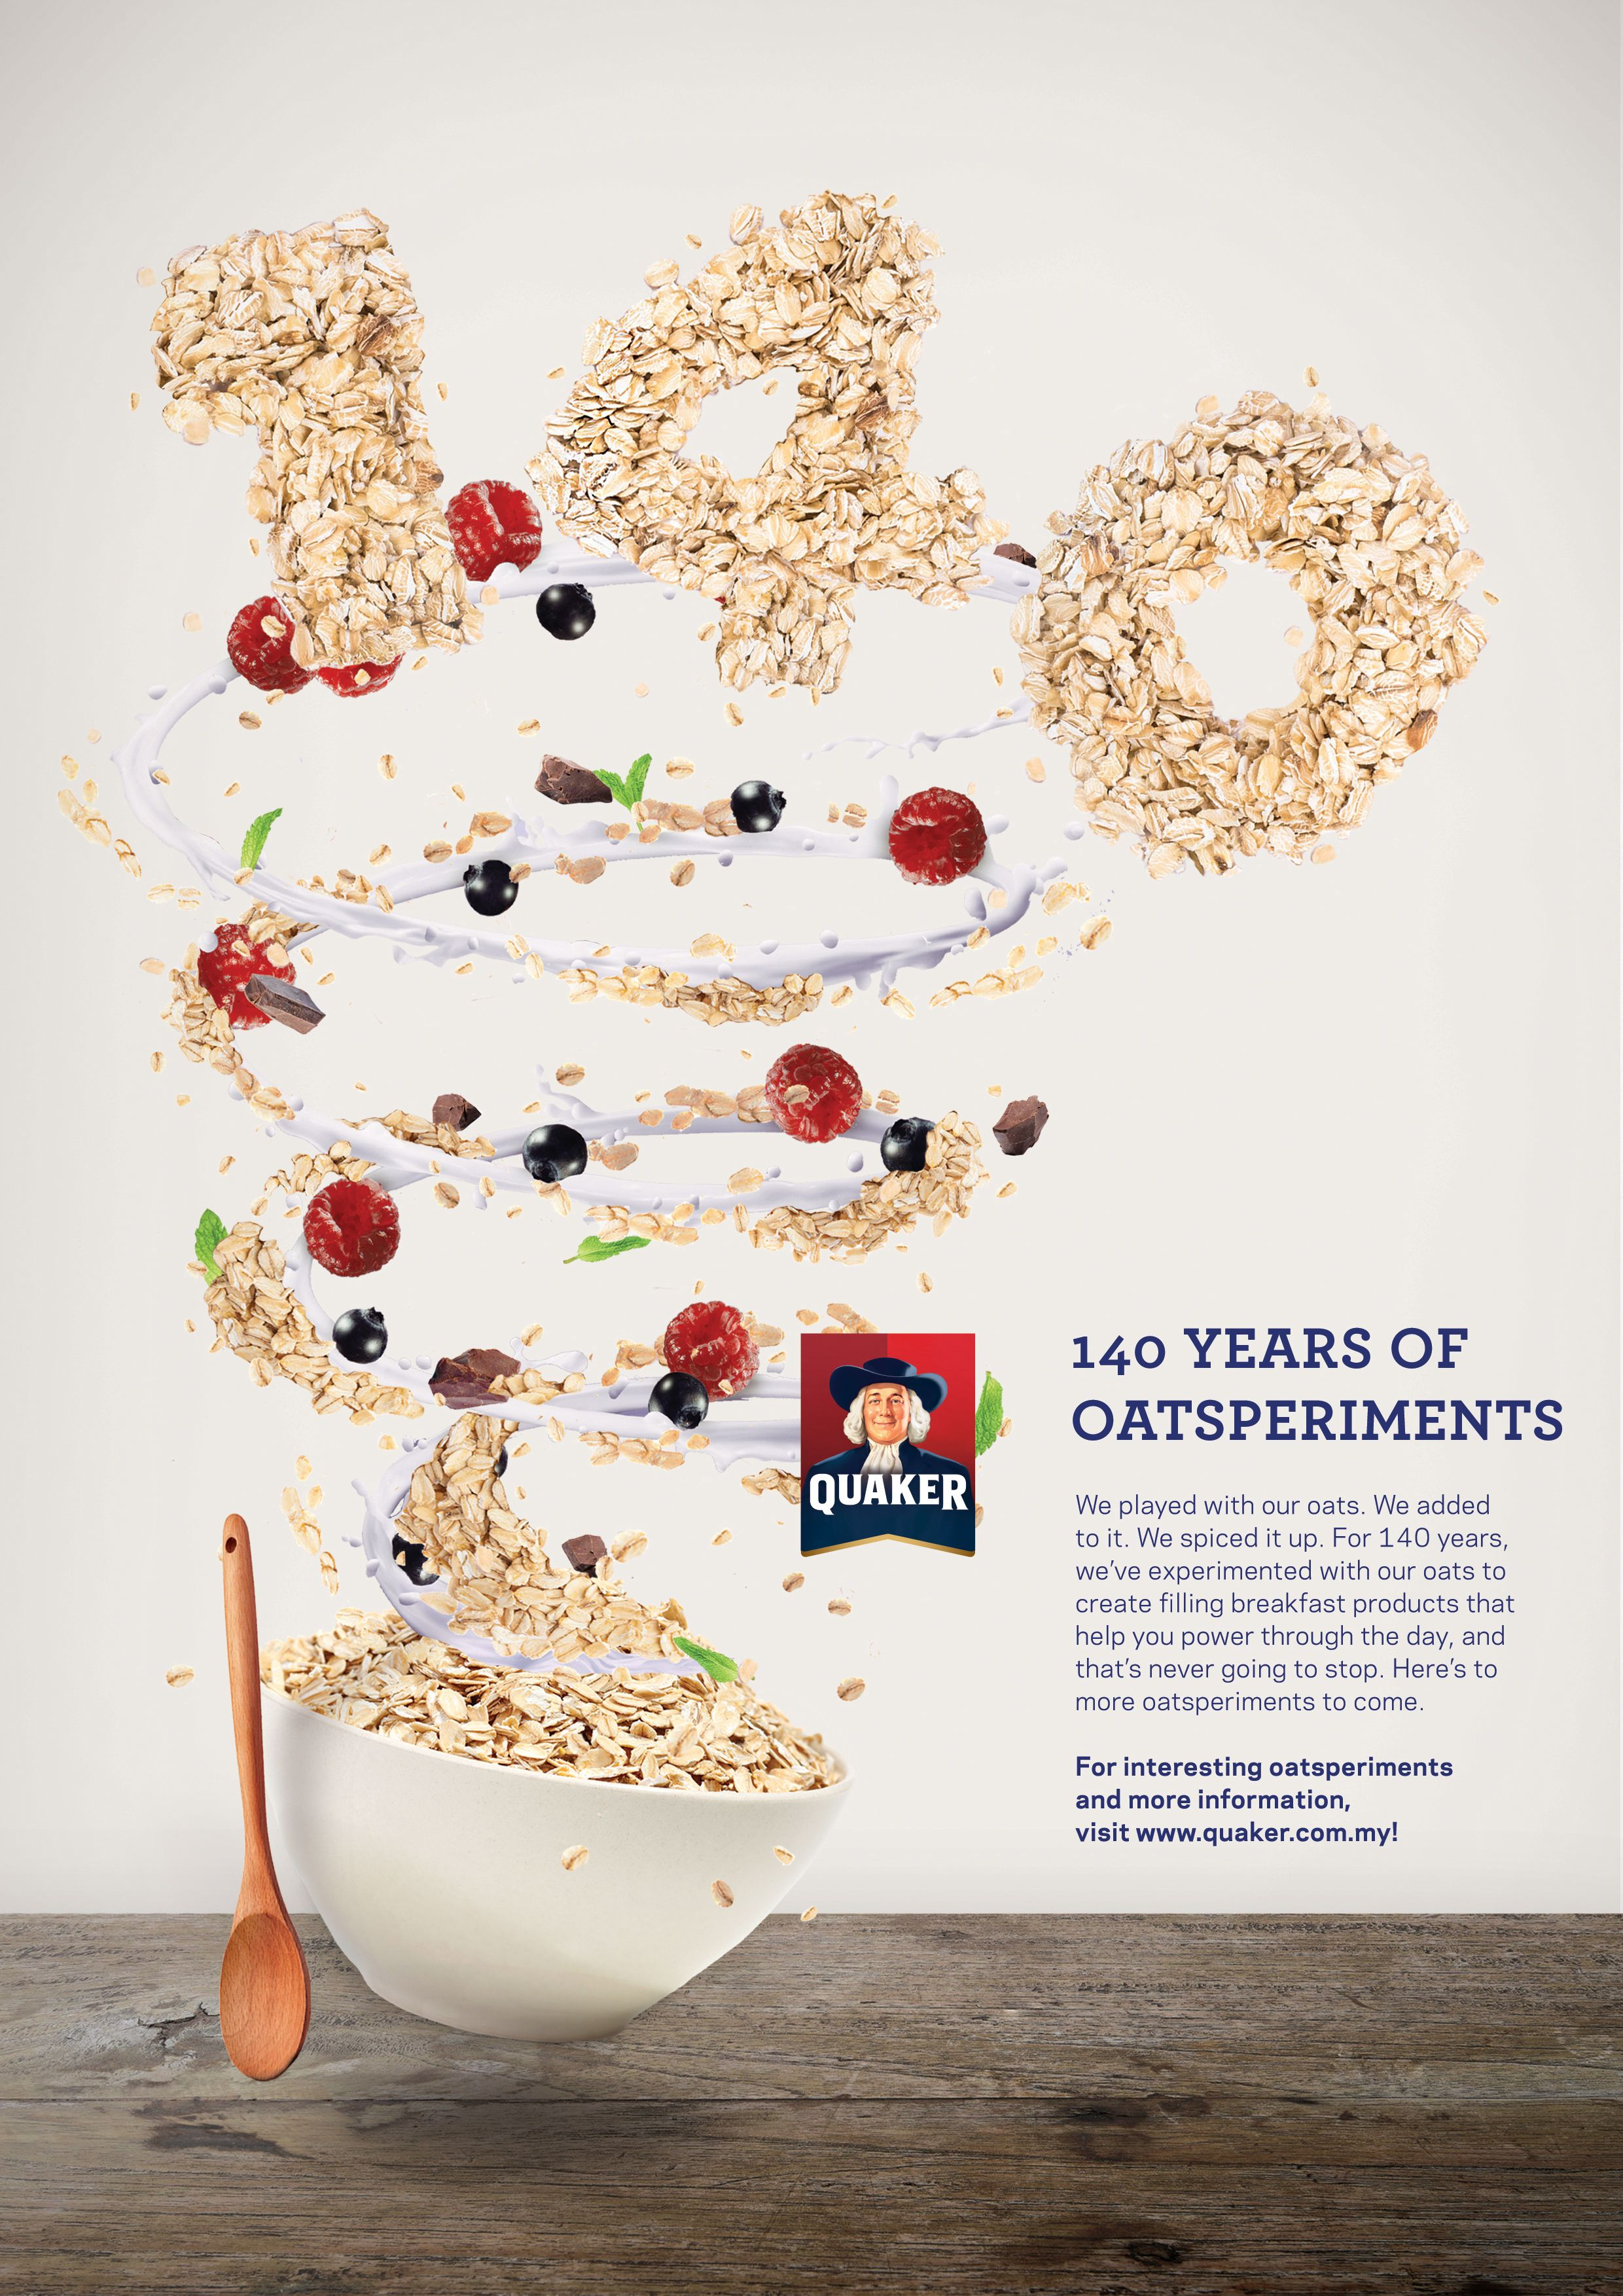 Check Out This Behance Project Quaker Oats Poster 140 Years And Cny Https Www Behance Net Gallery 43533995 Quaker Print Ads Yoghurt Packaging Poster